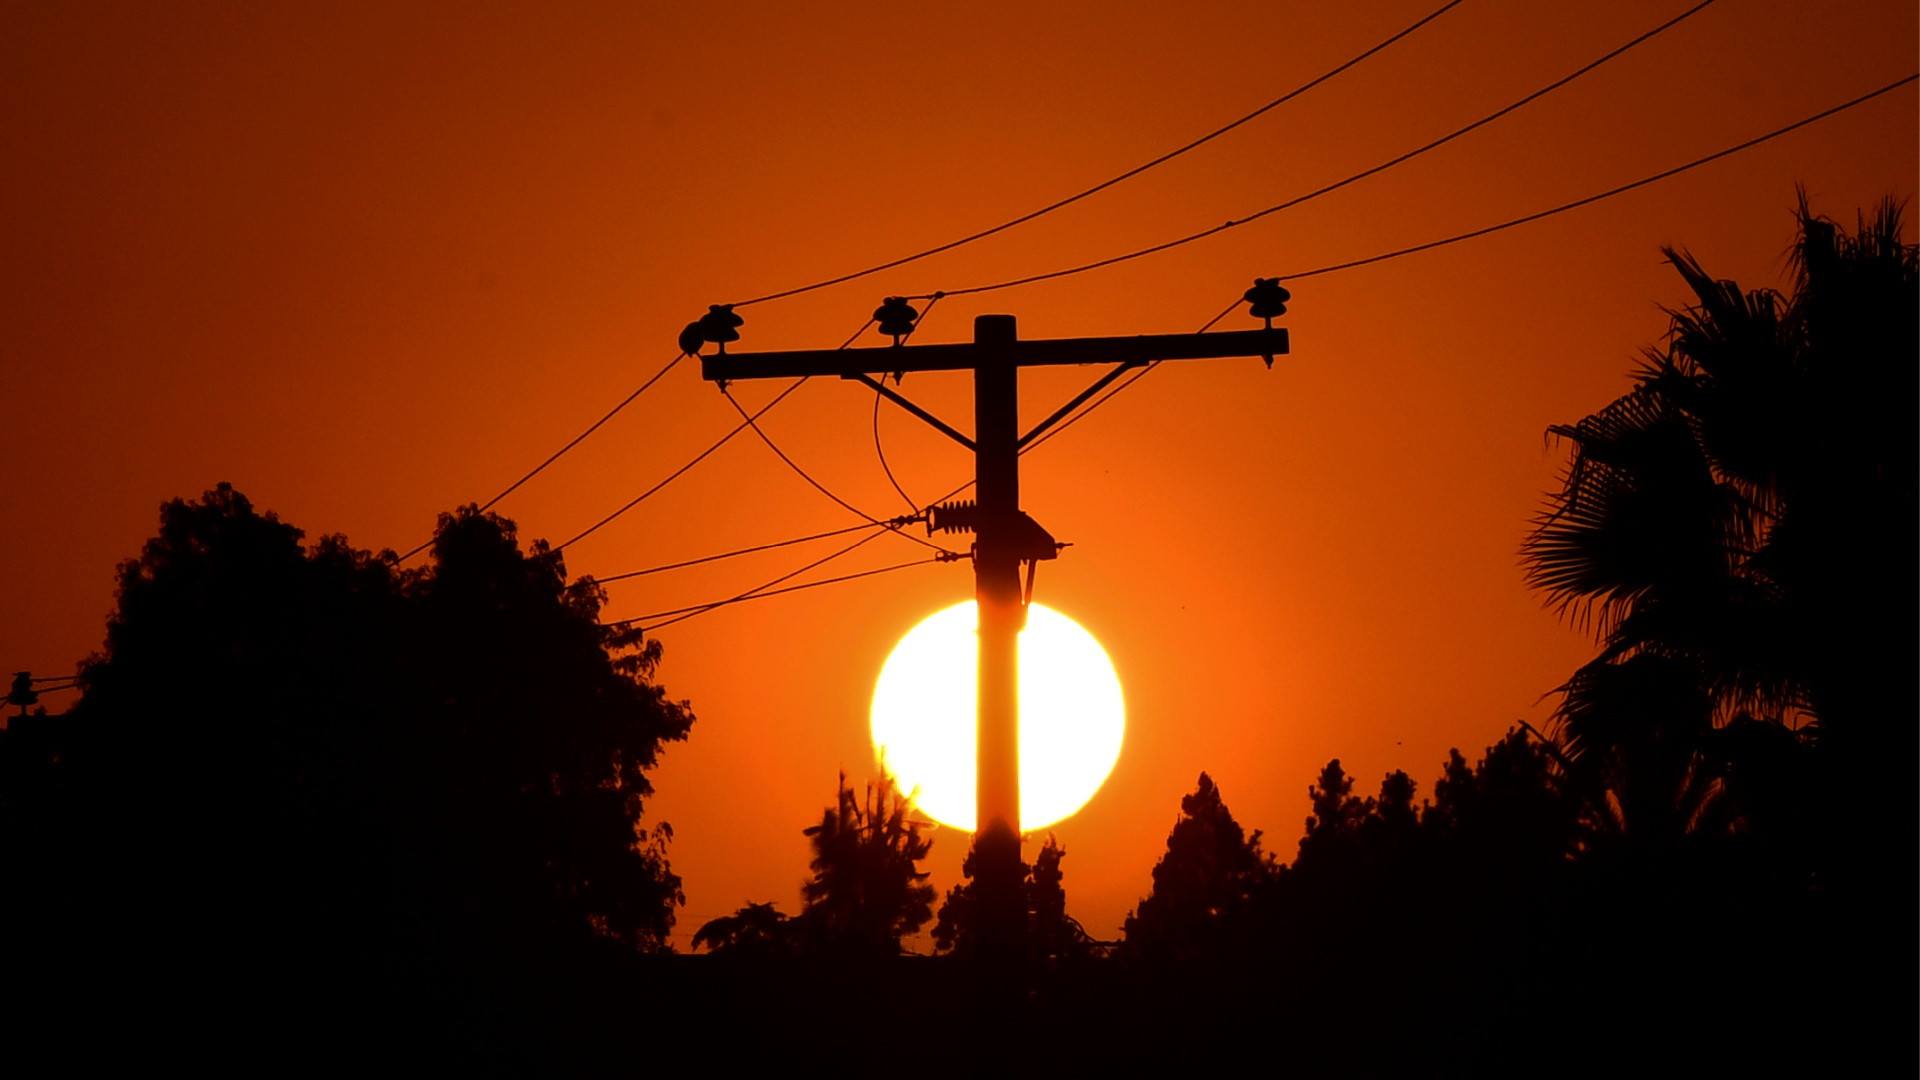 The sun sets behind power lines in Los Angeles on Sept. 3, 2020. (FREDERIC J. BROWN/AFP via Getty Images)